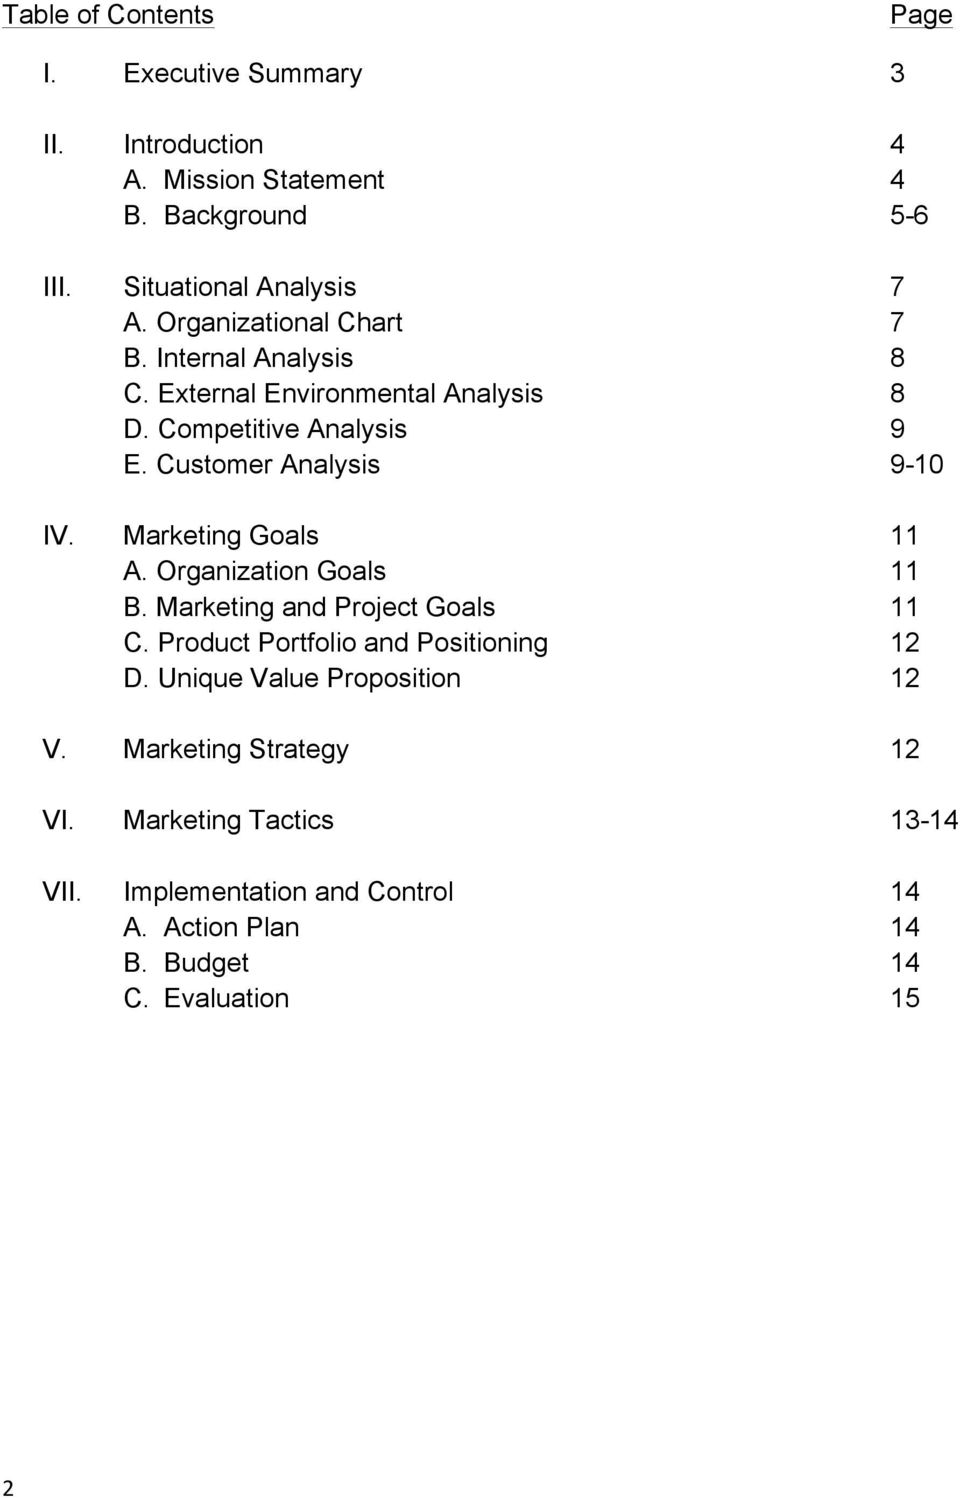 Marketing Goals 11 A. Organization Goals 11 B. Marketing and Project Goals 11 C. Product Portfolio and Positioning 12 D.